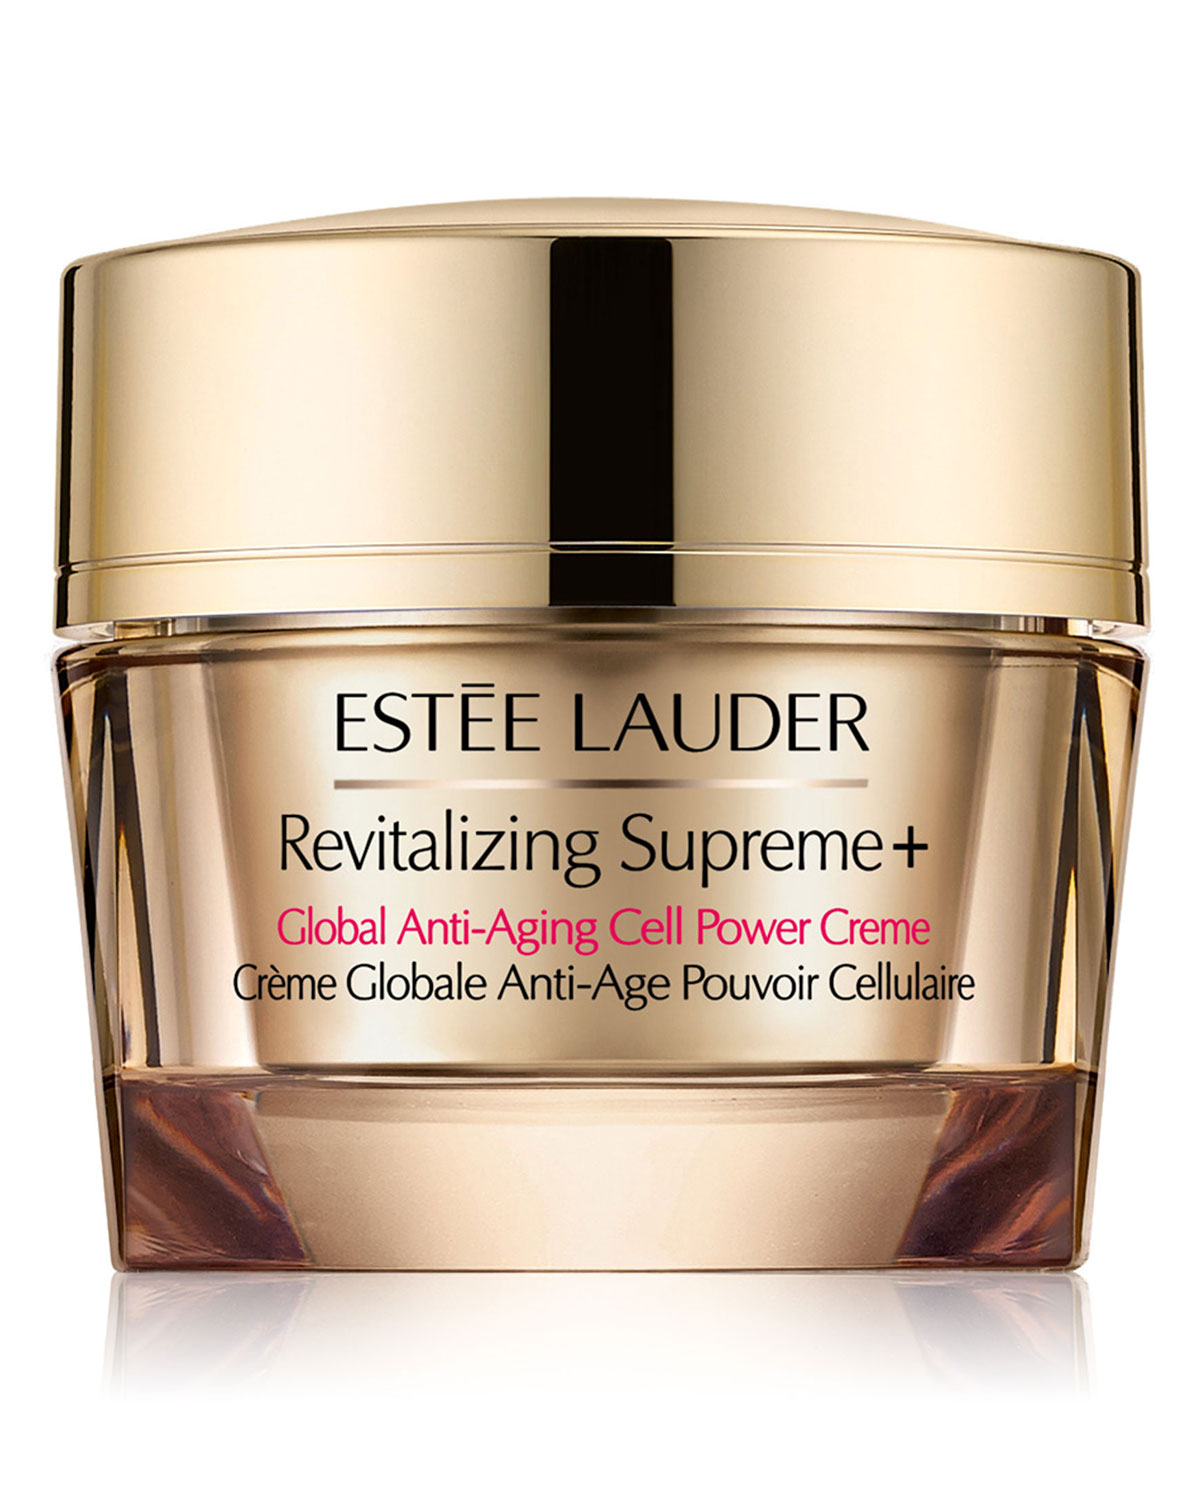 Estee Lauder 2.5 oz. Revitalizing Supreme+ Global Anti-Aging Cell Power Crème